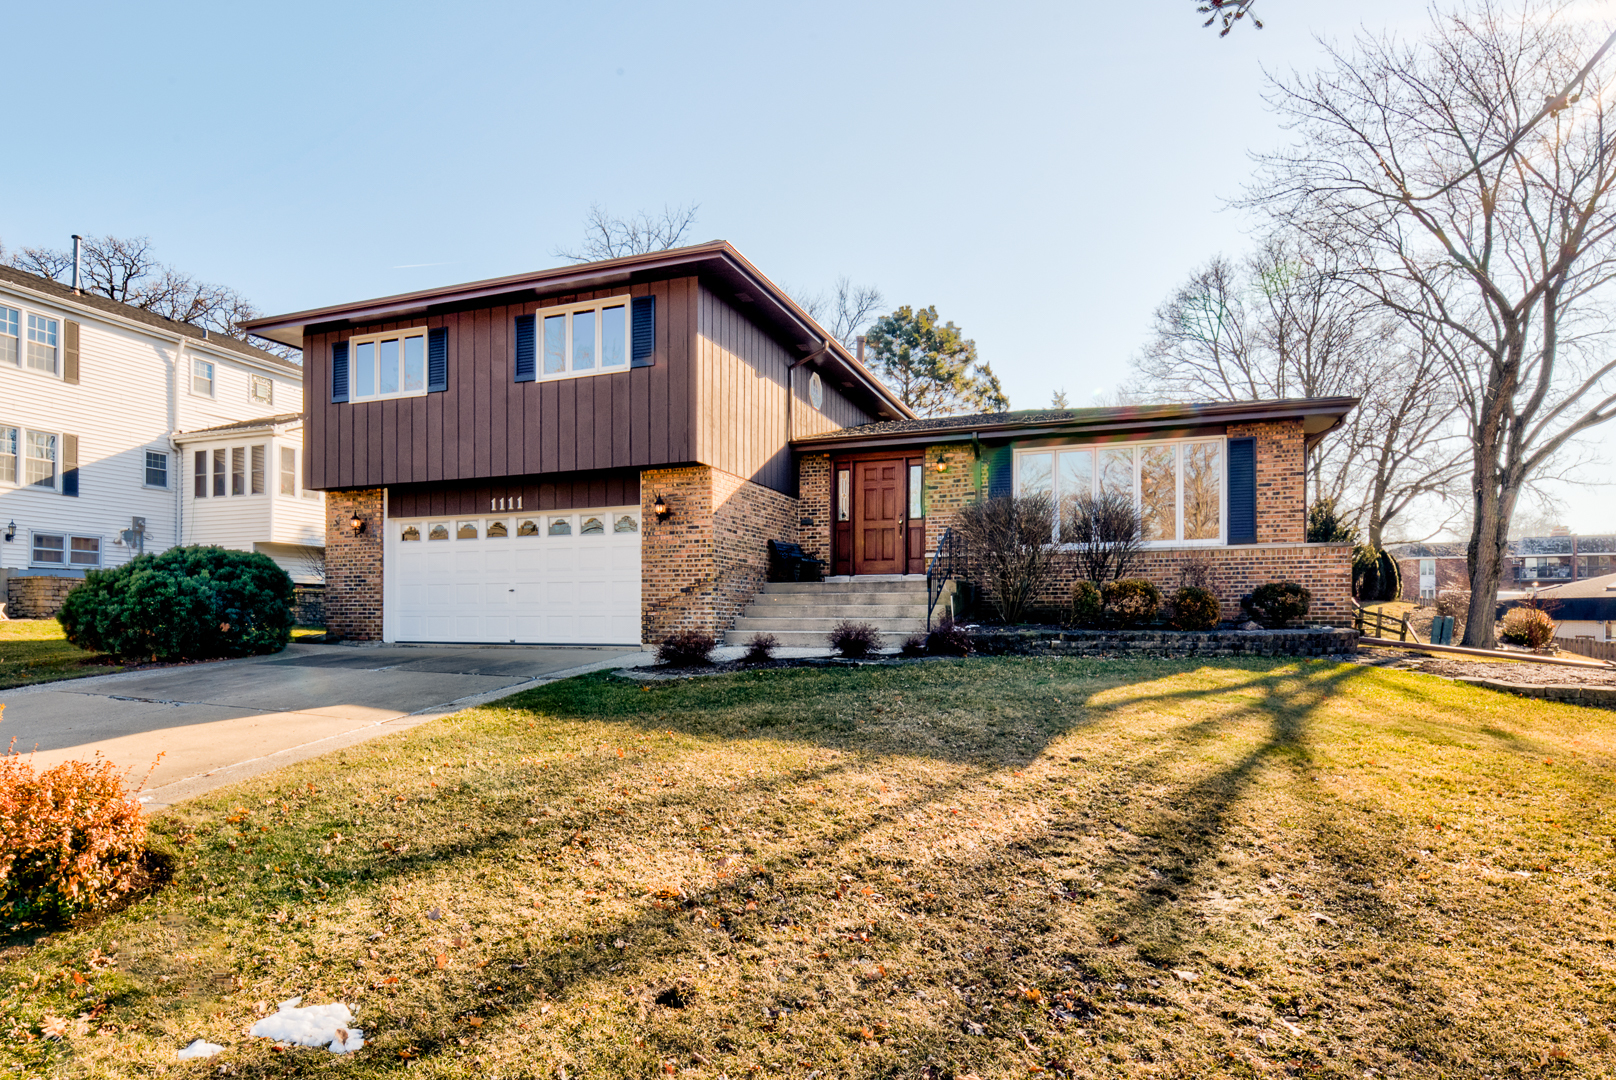 One of Downers Grove 4 Bedroom Homes for Sale at 1111 39th Street